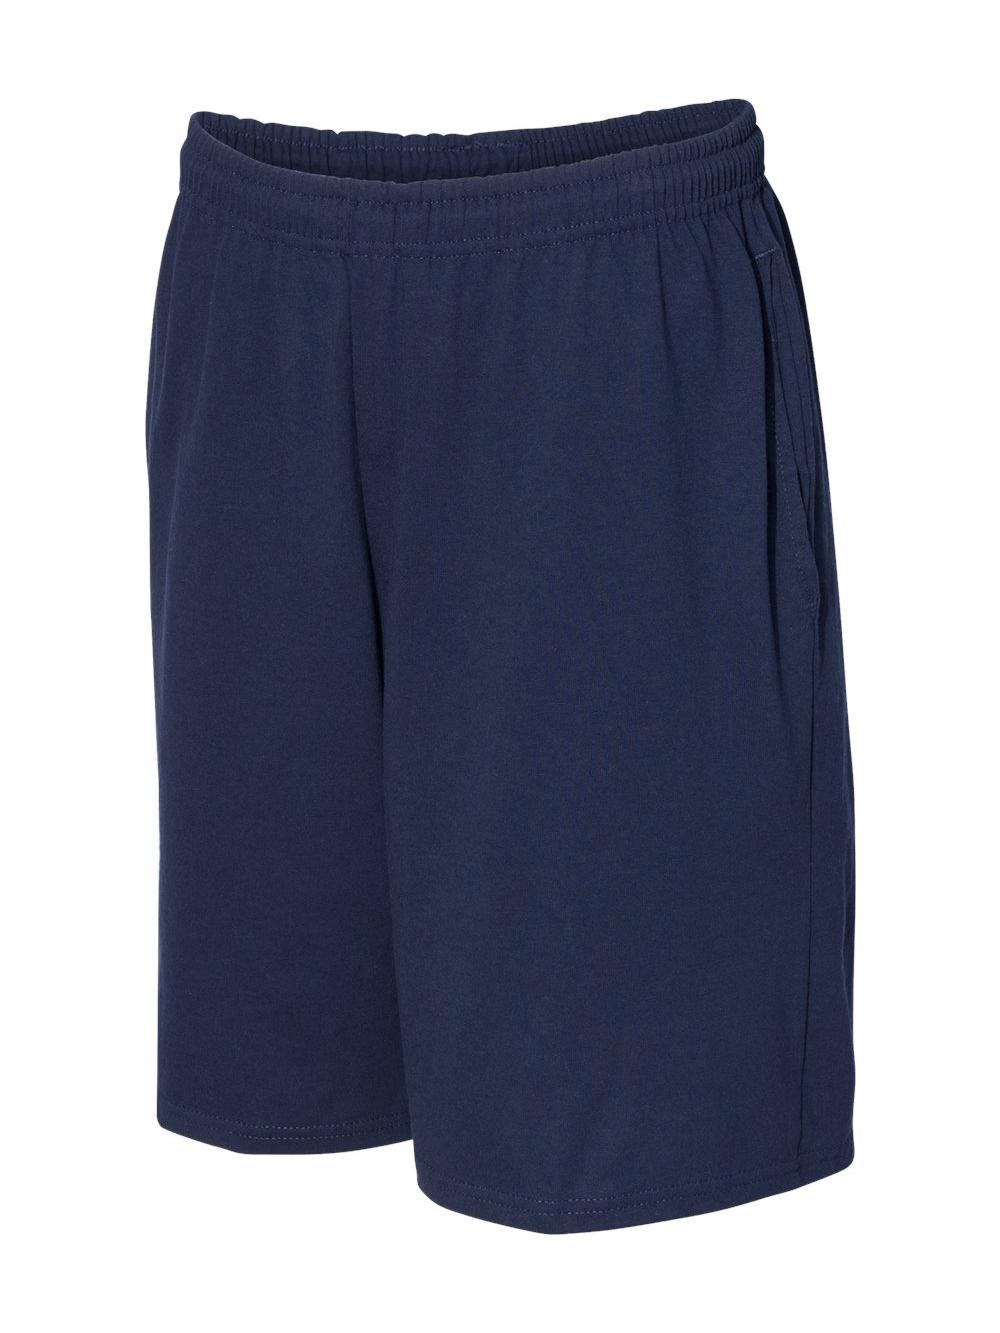 Russell-Athletic-Essential-Jersey-Cotton-Shorts-with-Pockets-25843M thumbnail 10